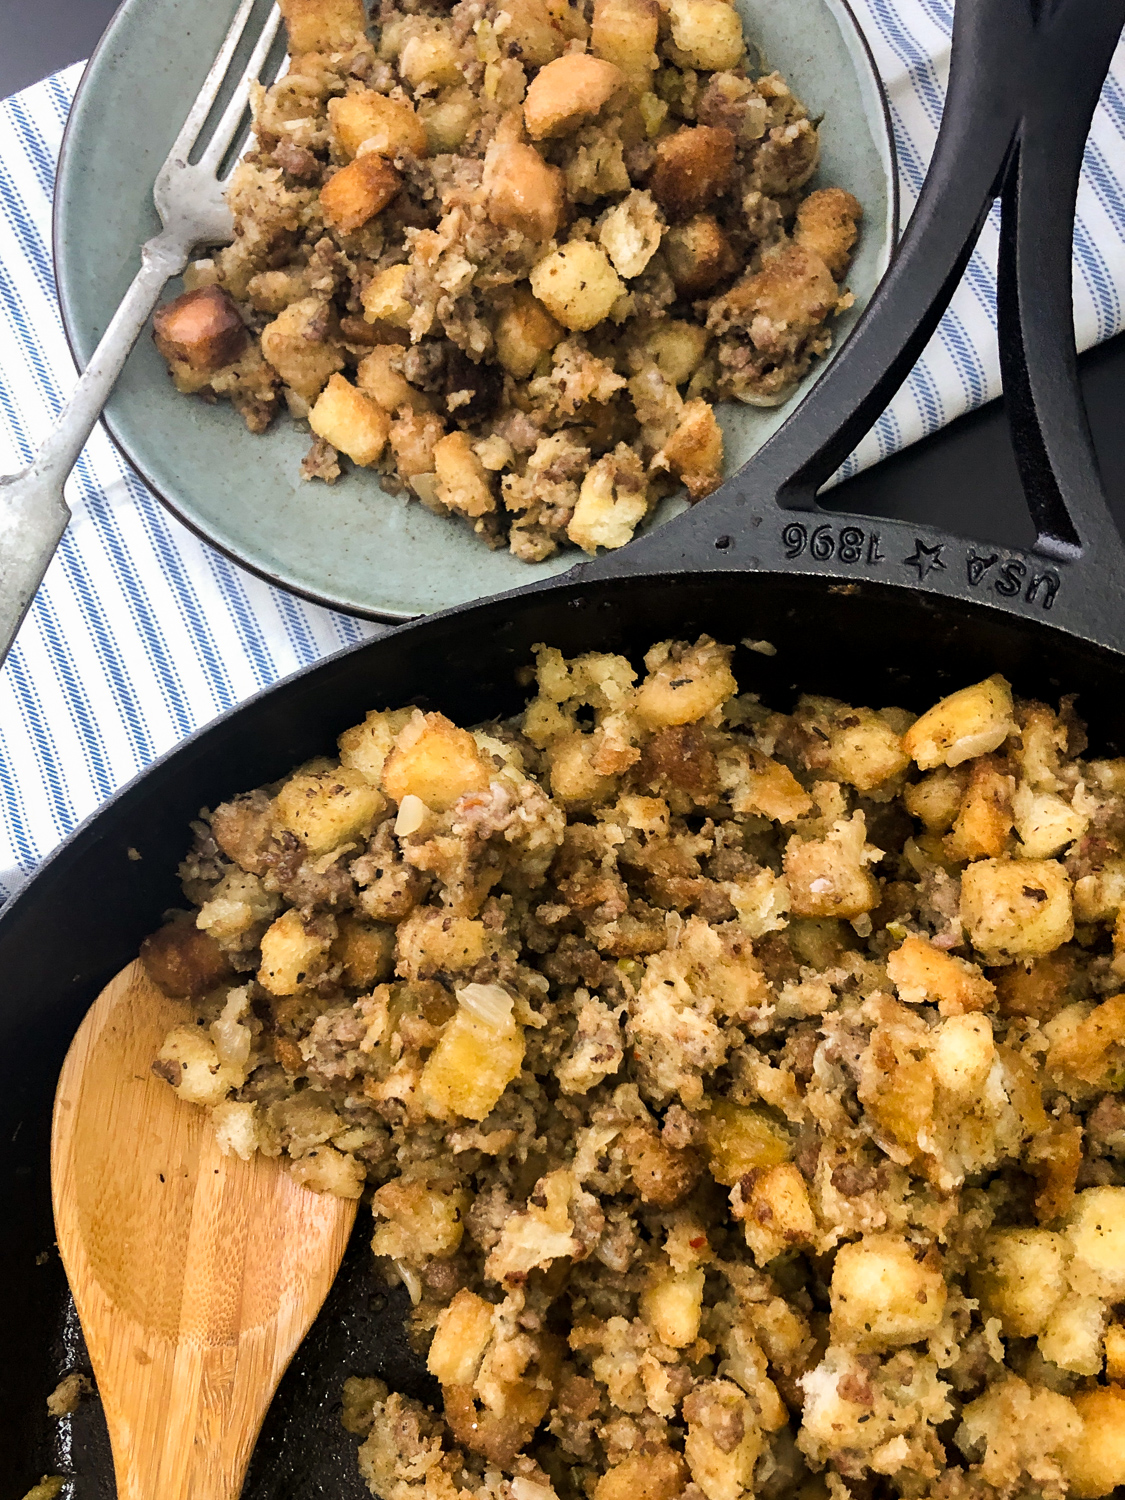 Cooked and served sausage stuffing portioned onto a blue plate with a fork and the rest remaining dressing in the skillet with a wooden spoon.